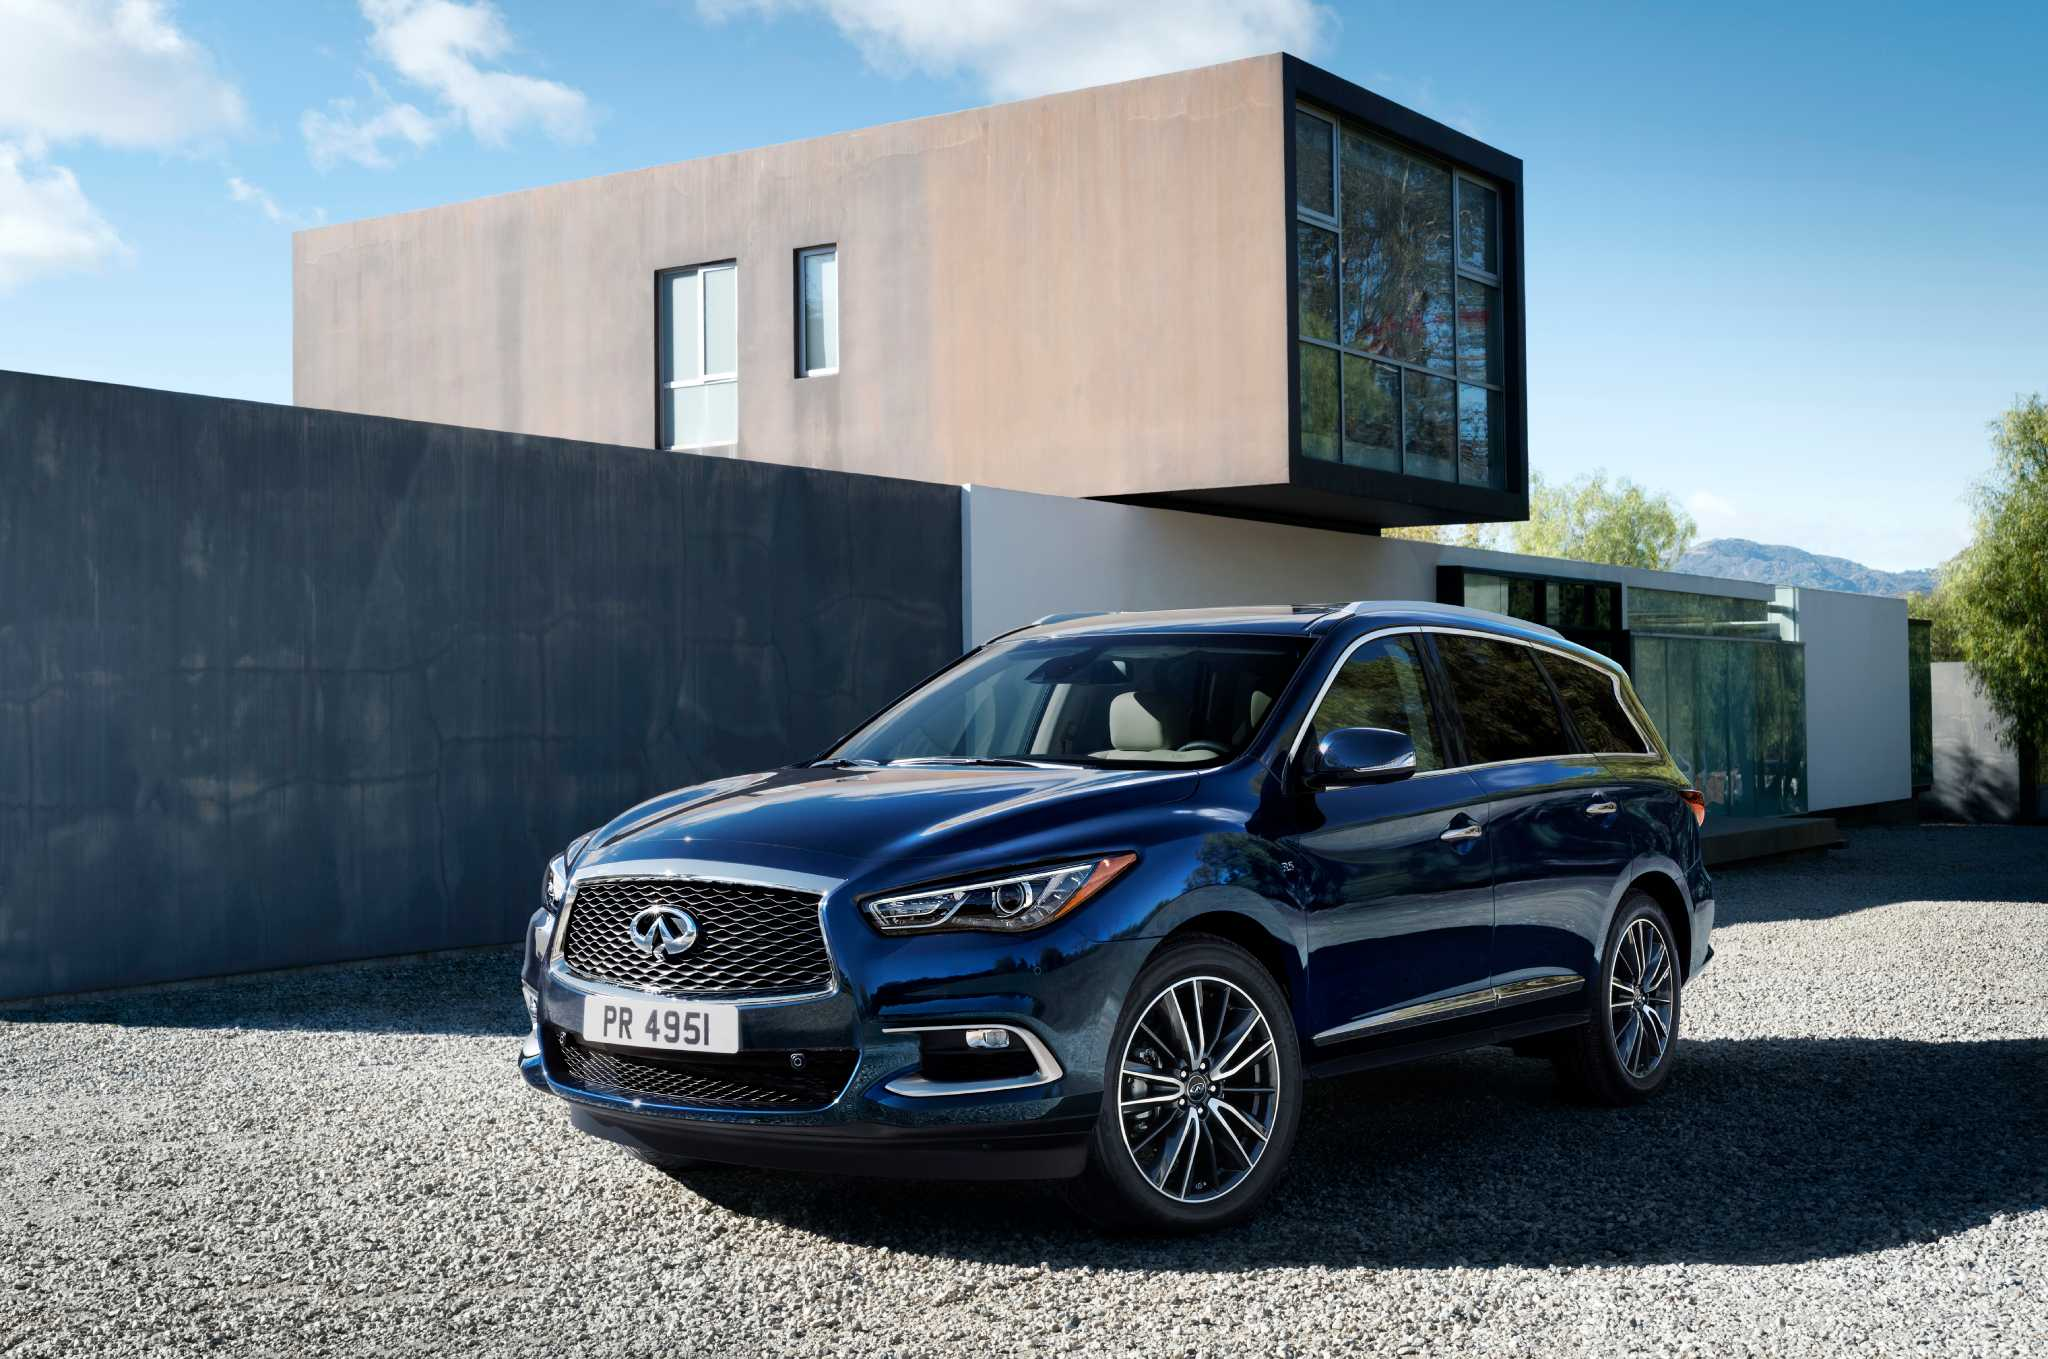 Infiniti updates three-row QX60 crossover for 2016